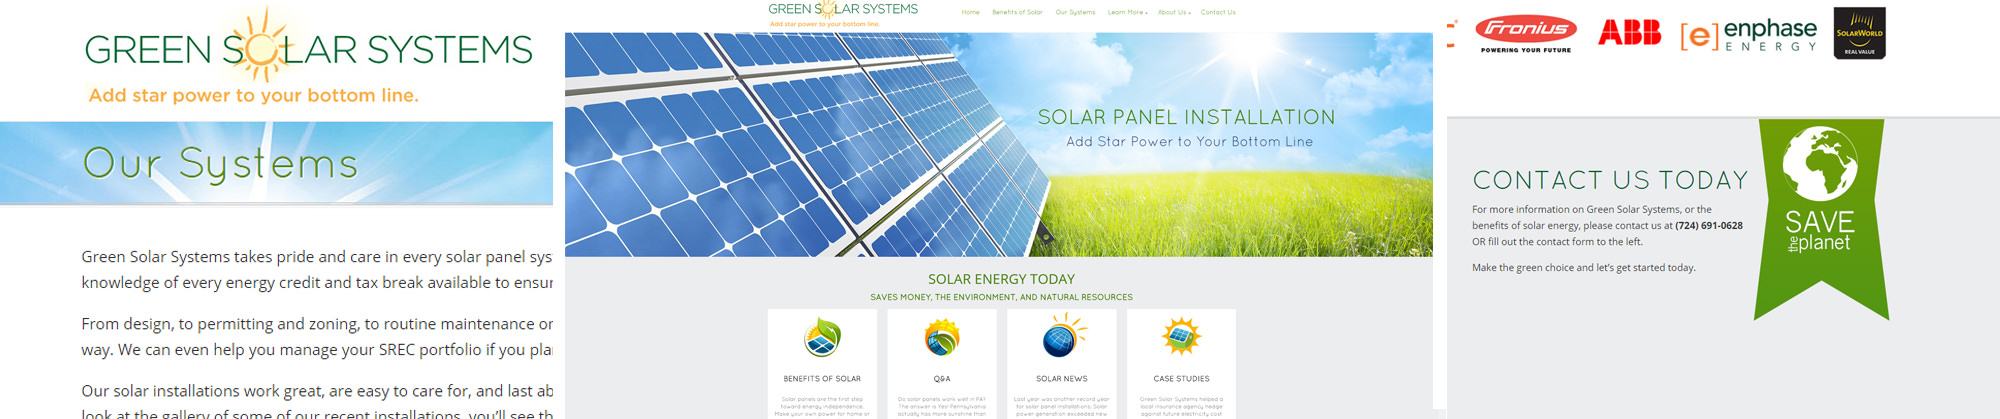 green-solar-systems